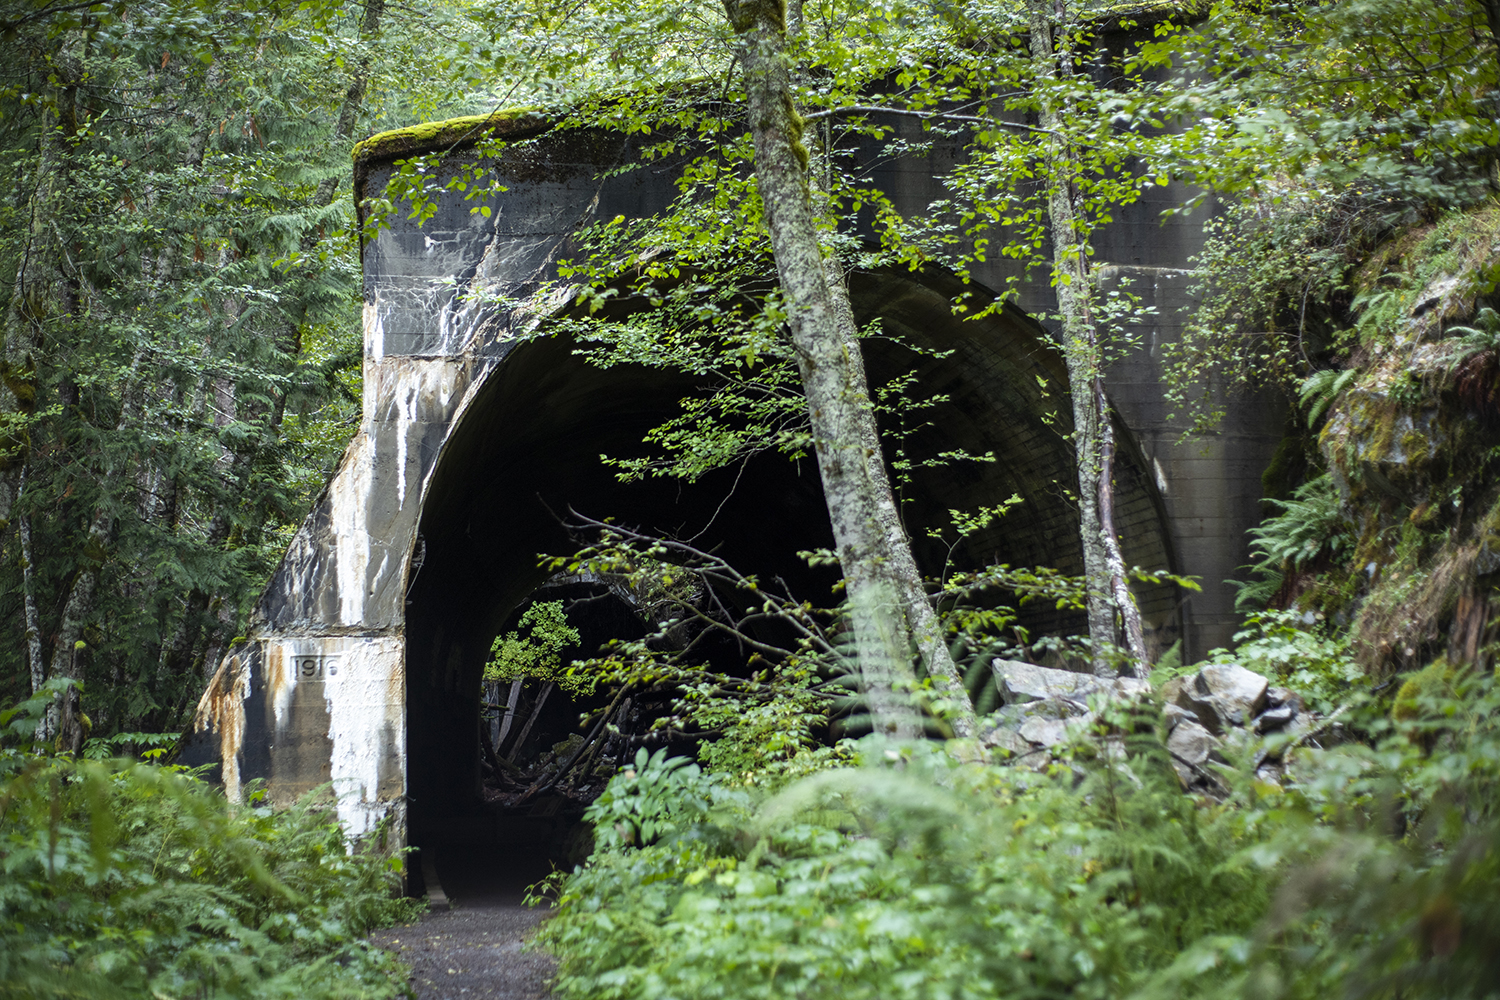 Dates stamped on the outside of several tunnels along the path tell the tale of a once-busy railway now defunct from the catastrophic natural disaster decades prior. (Image: Rachael Jones / Seattle Refined)